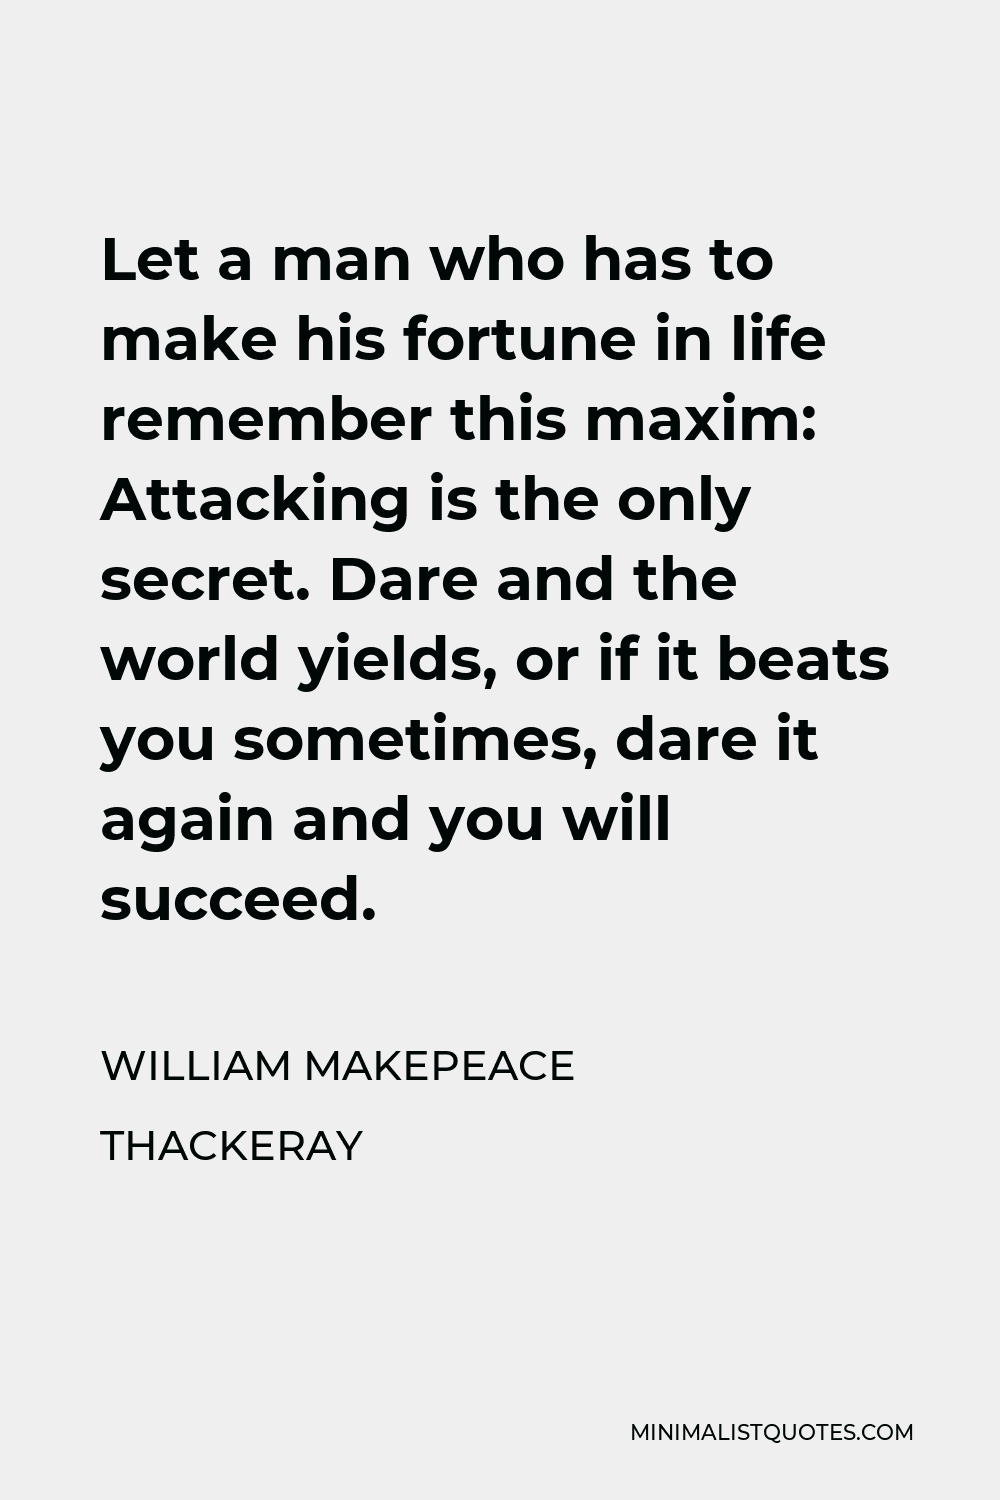 William Makepeace Thackeray Quote - Let a man who has to make his fortune in life remember this maxim: Attacking is the only secret. Dare and the world yields, or if it beats you sometimes, dare it again and you will succeed.